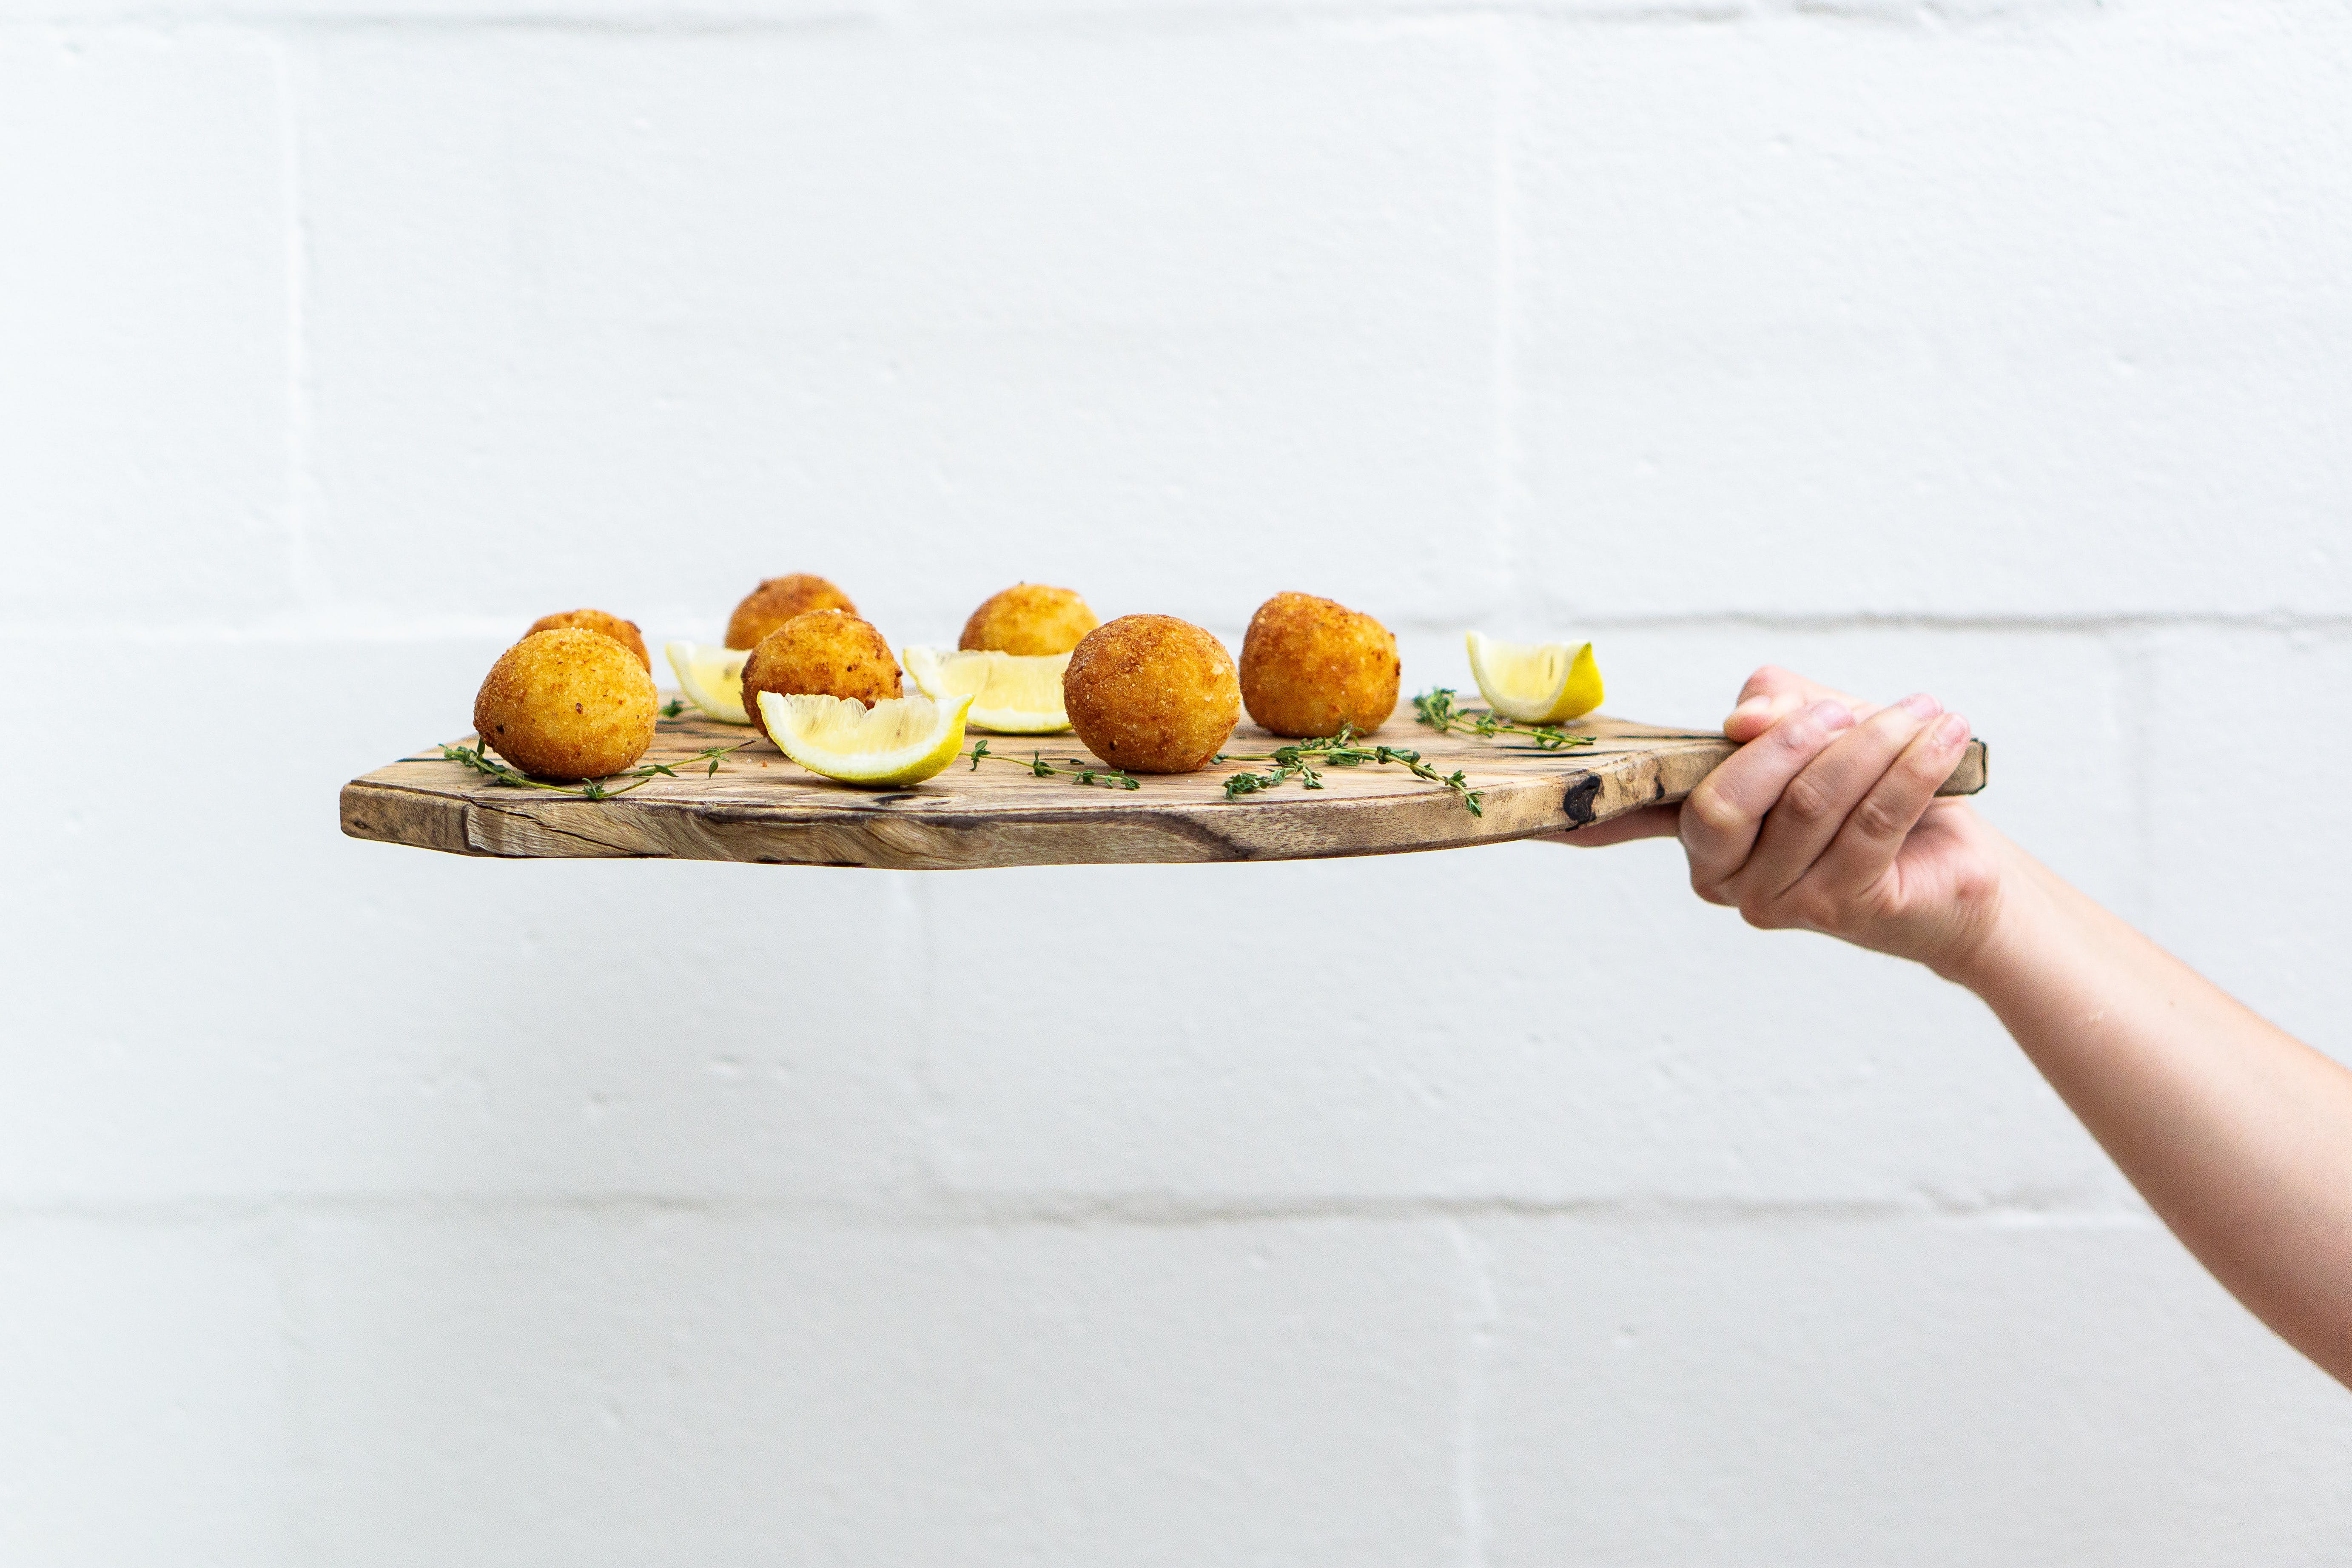 Person Holding Chopping Board With Meatballs and Sliced Lemons